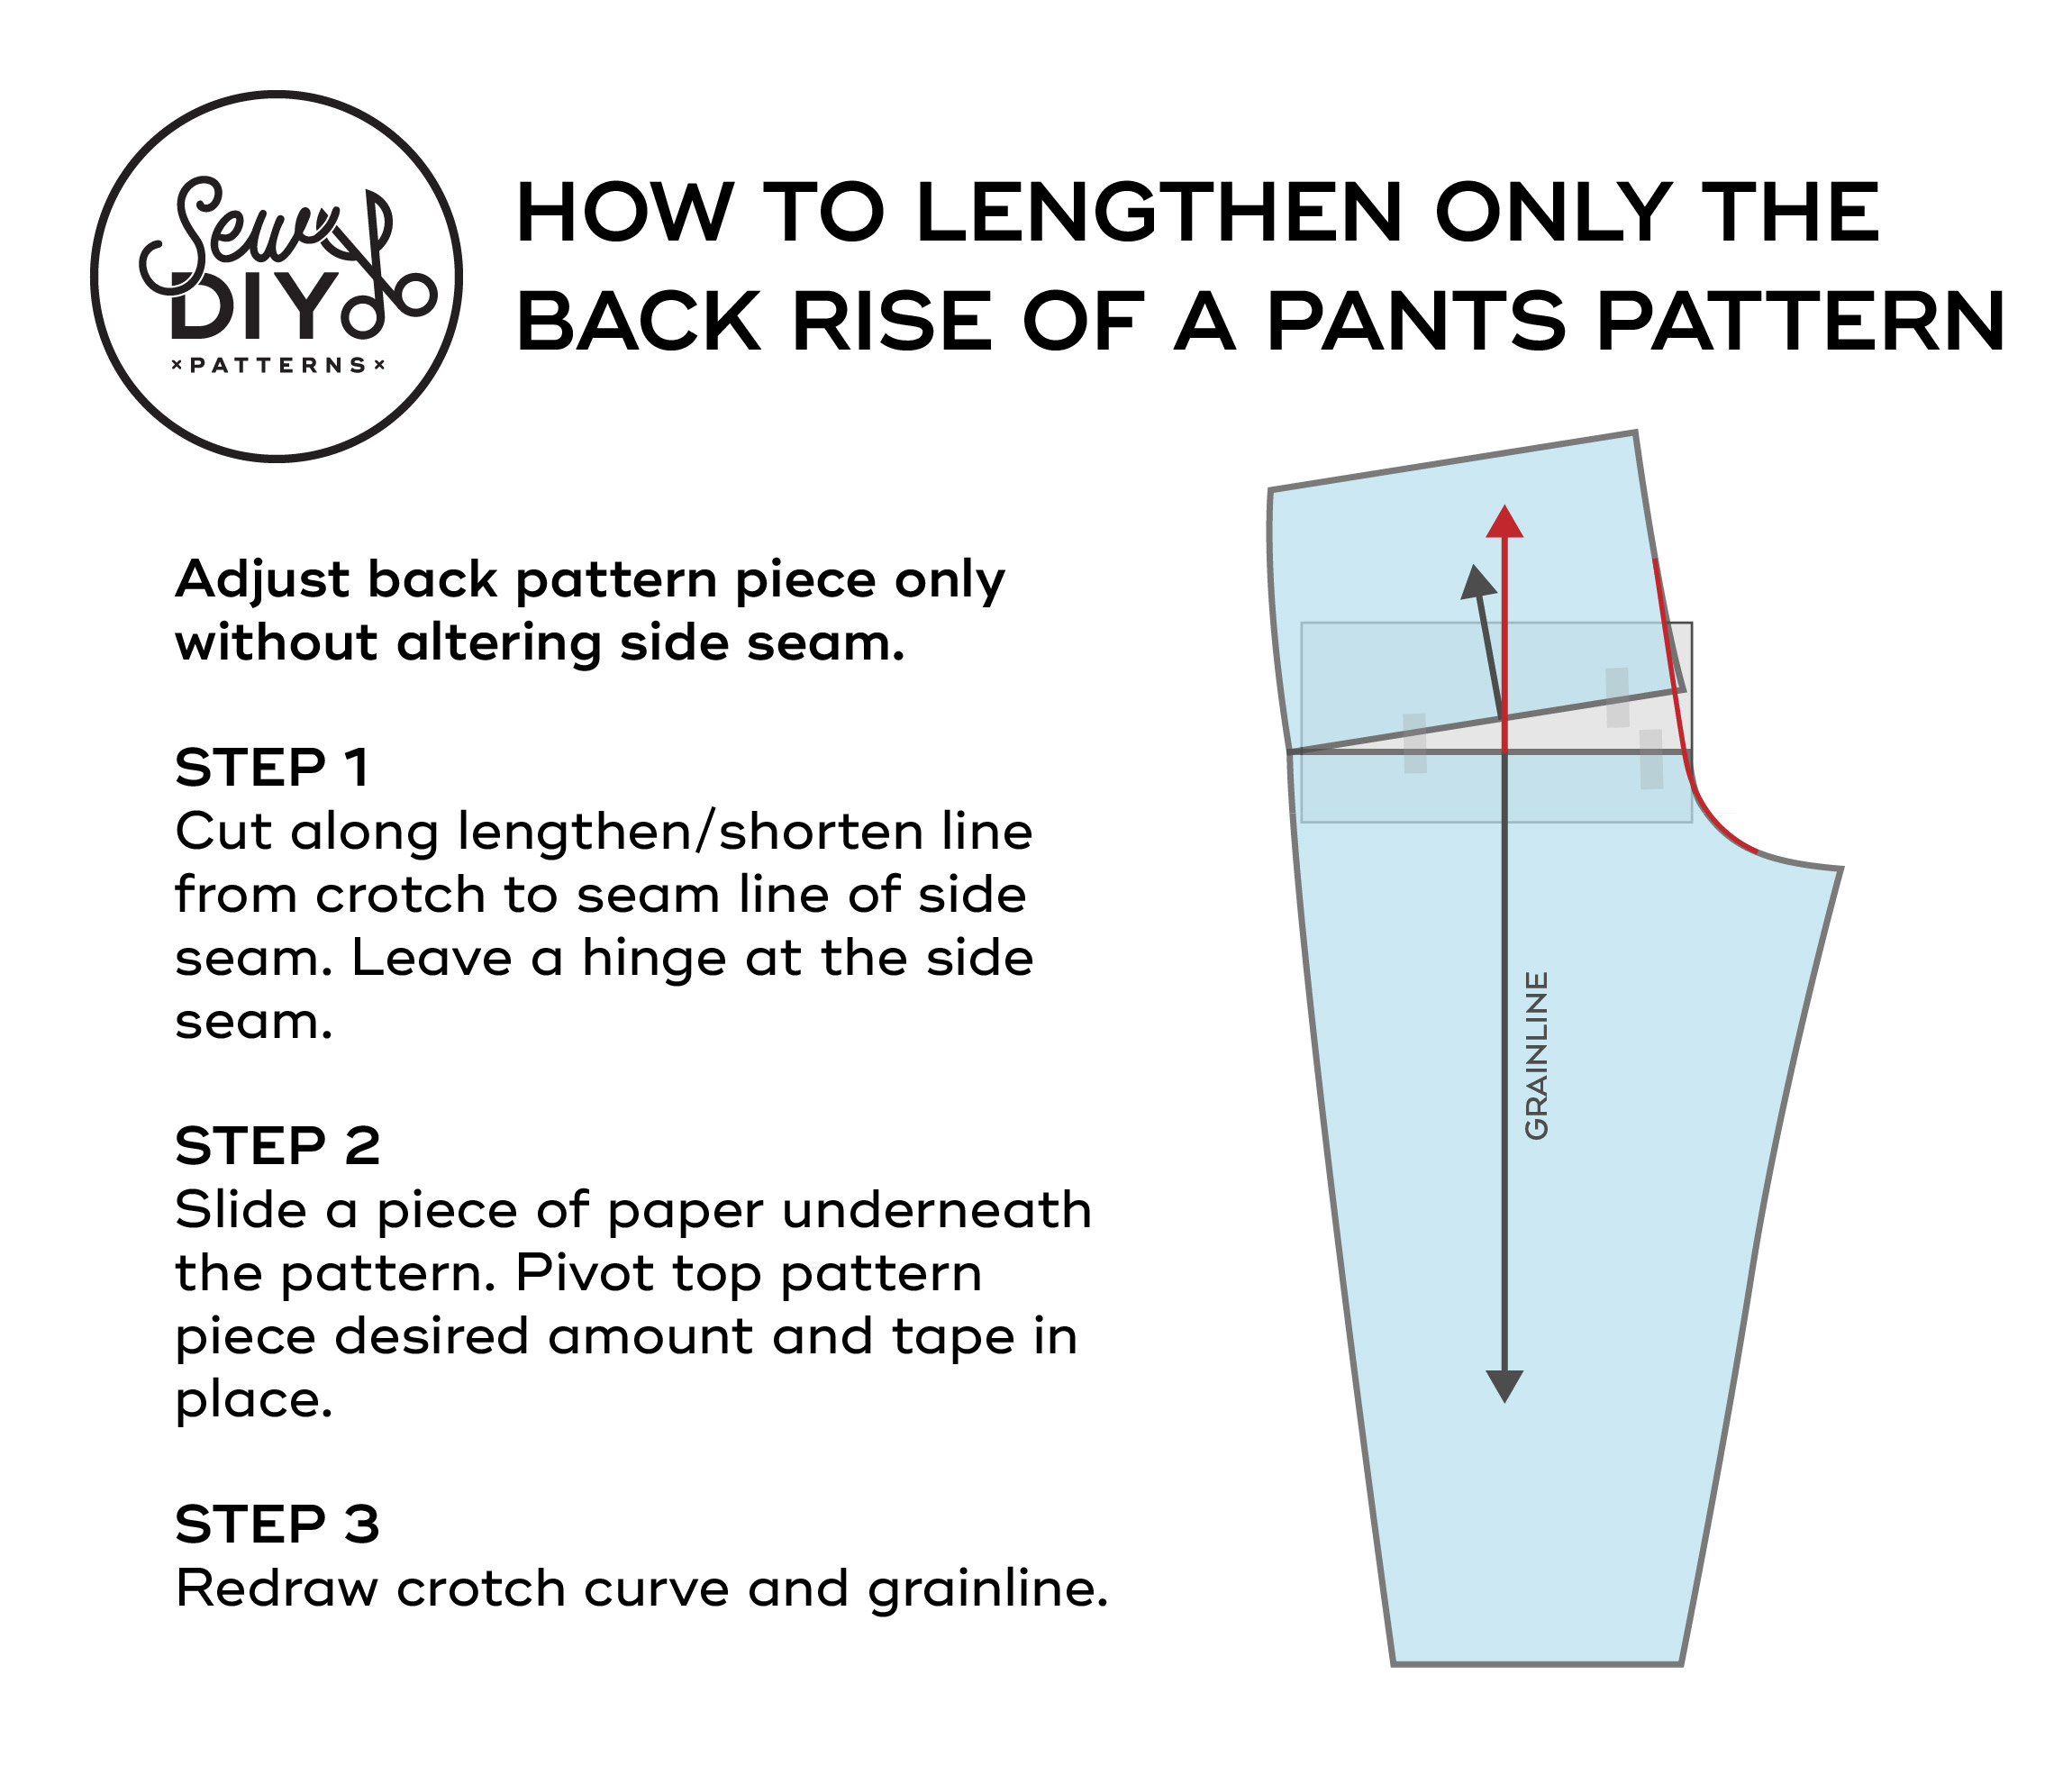 How to lengthen back rise only of a pants pattern tutorial by Sew DIY